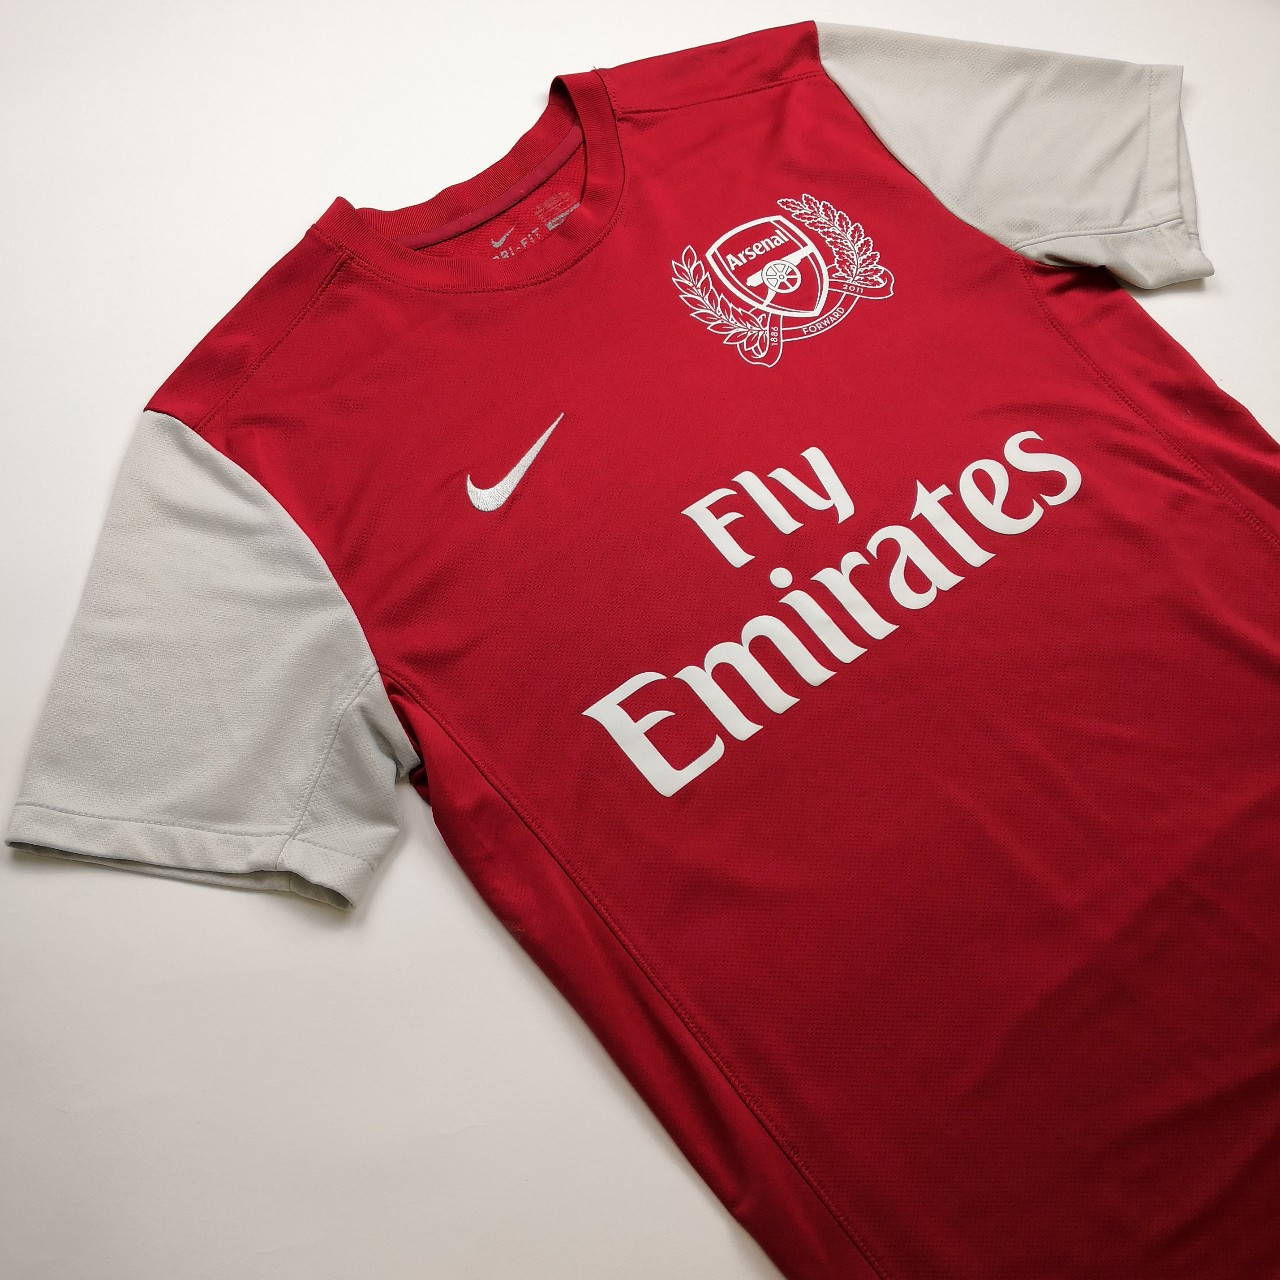 online retailer 161b5 f9ad0 ARSENAL FC 2011/2012 NIKE HOME SHIRT IN MENS ...